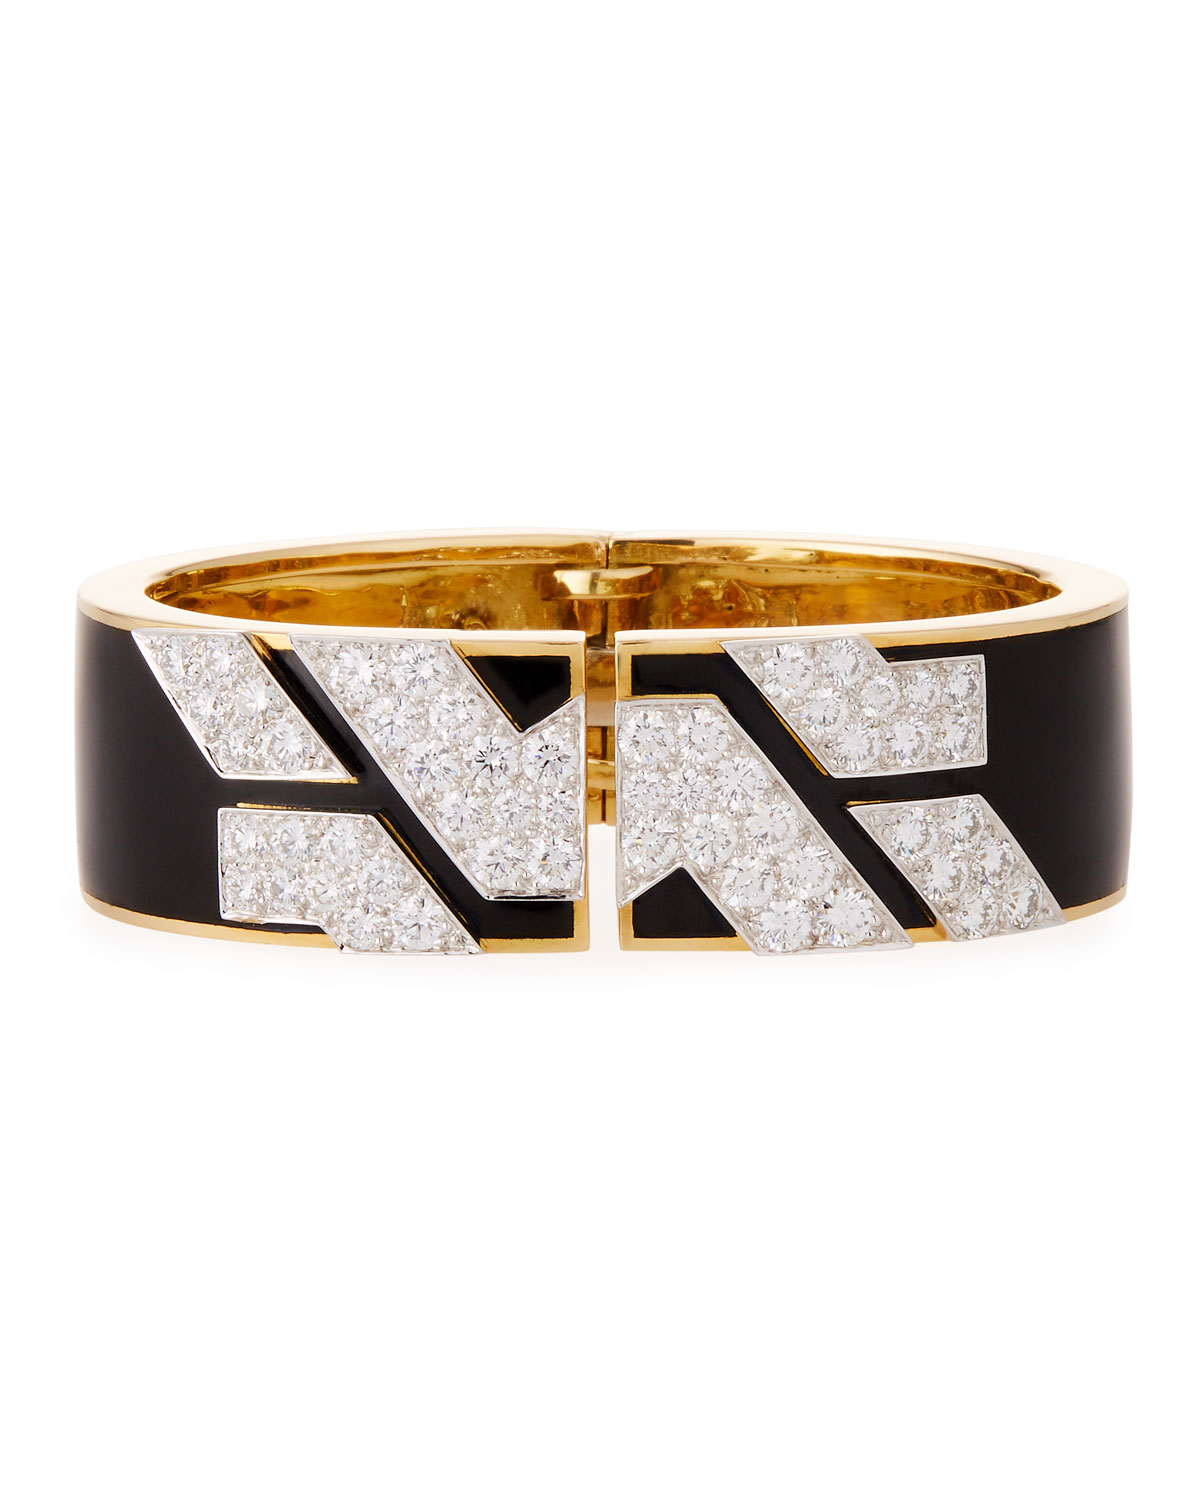 Manhattan 18k Gold Diamond Cuff Bracelet in Black Enamel